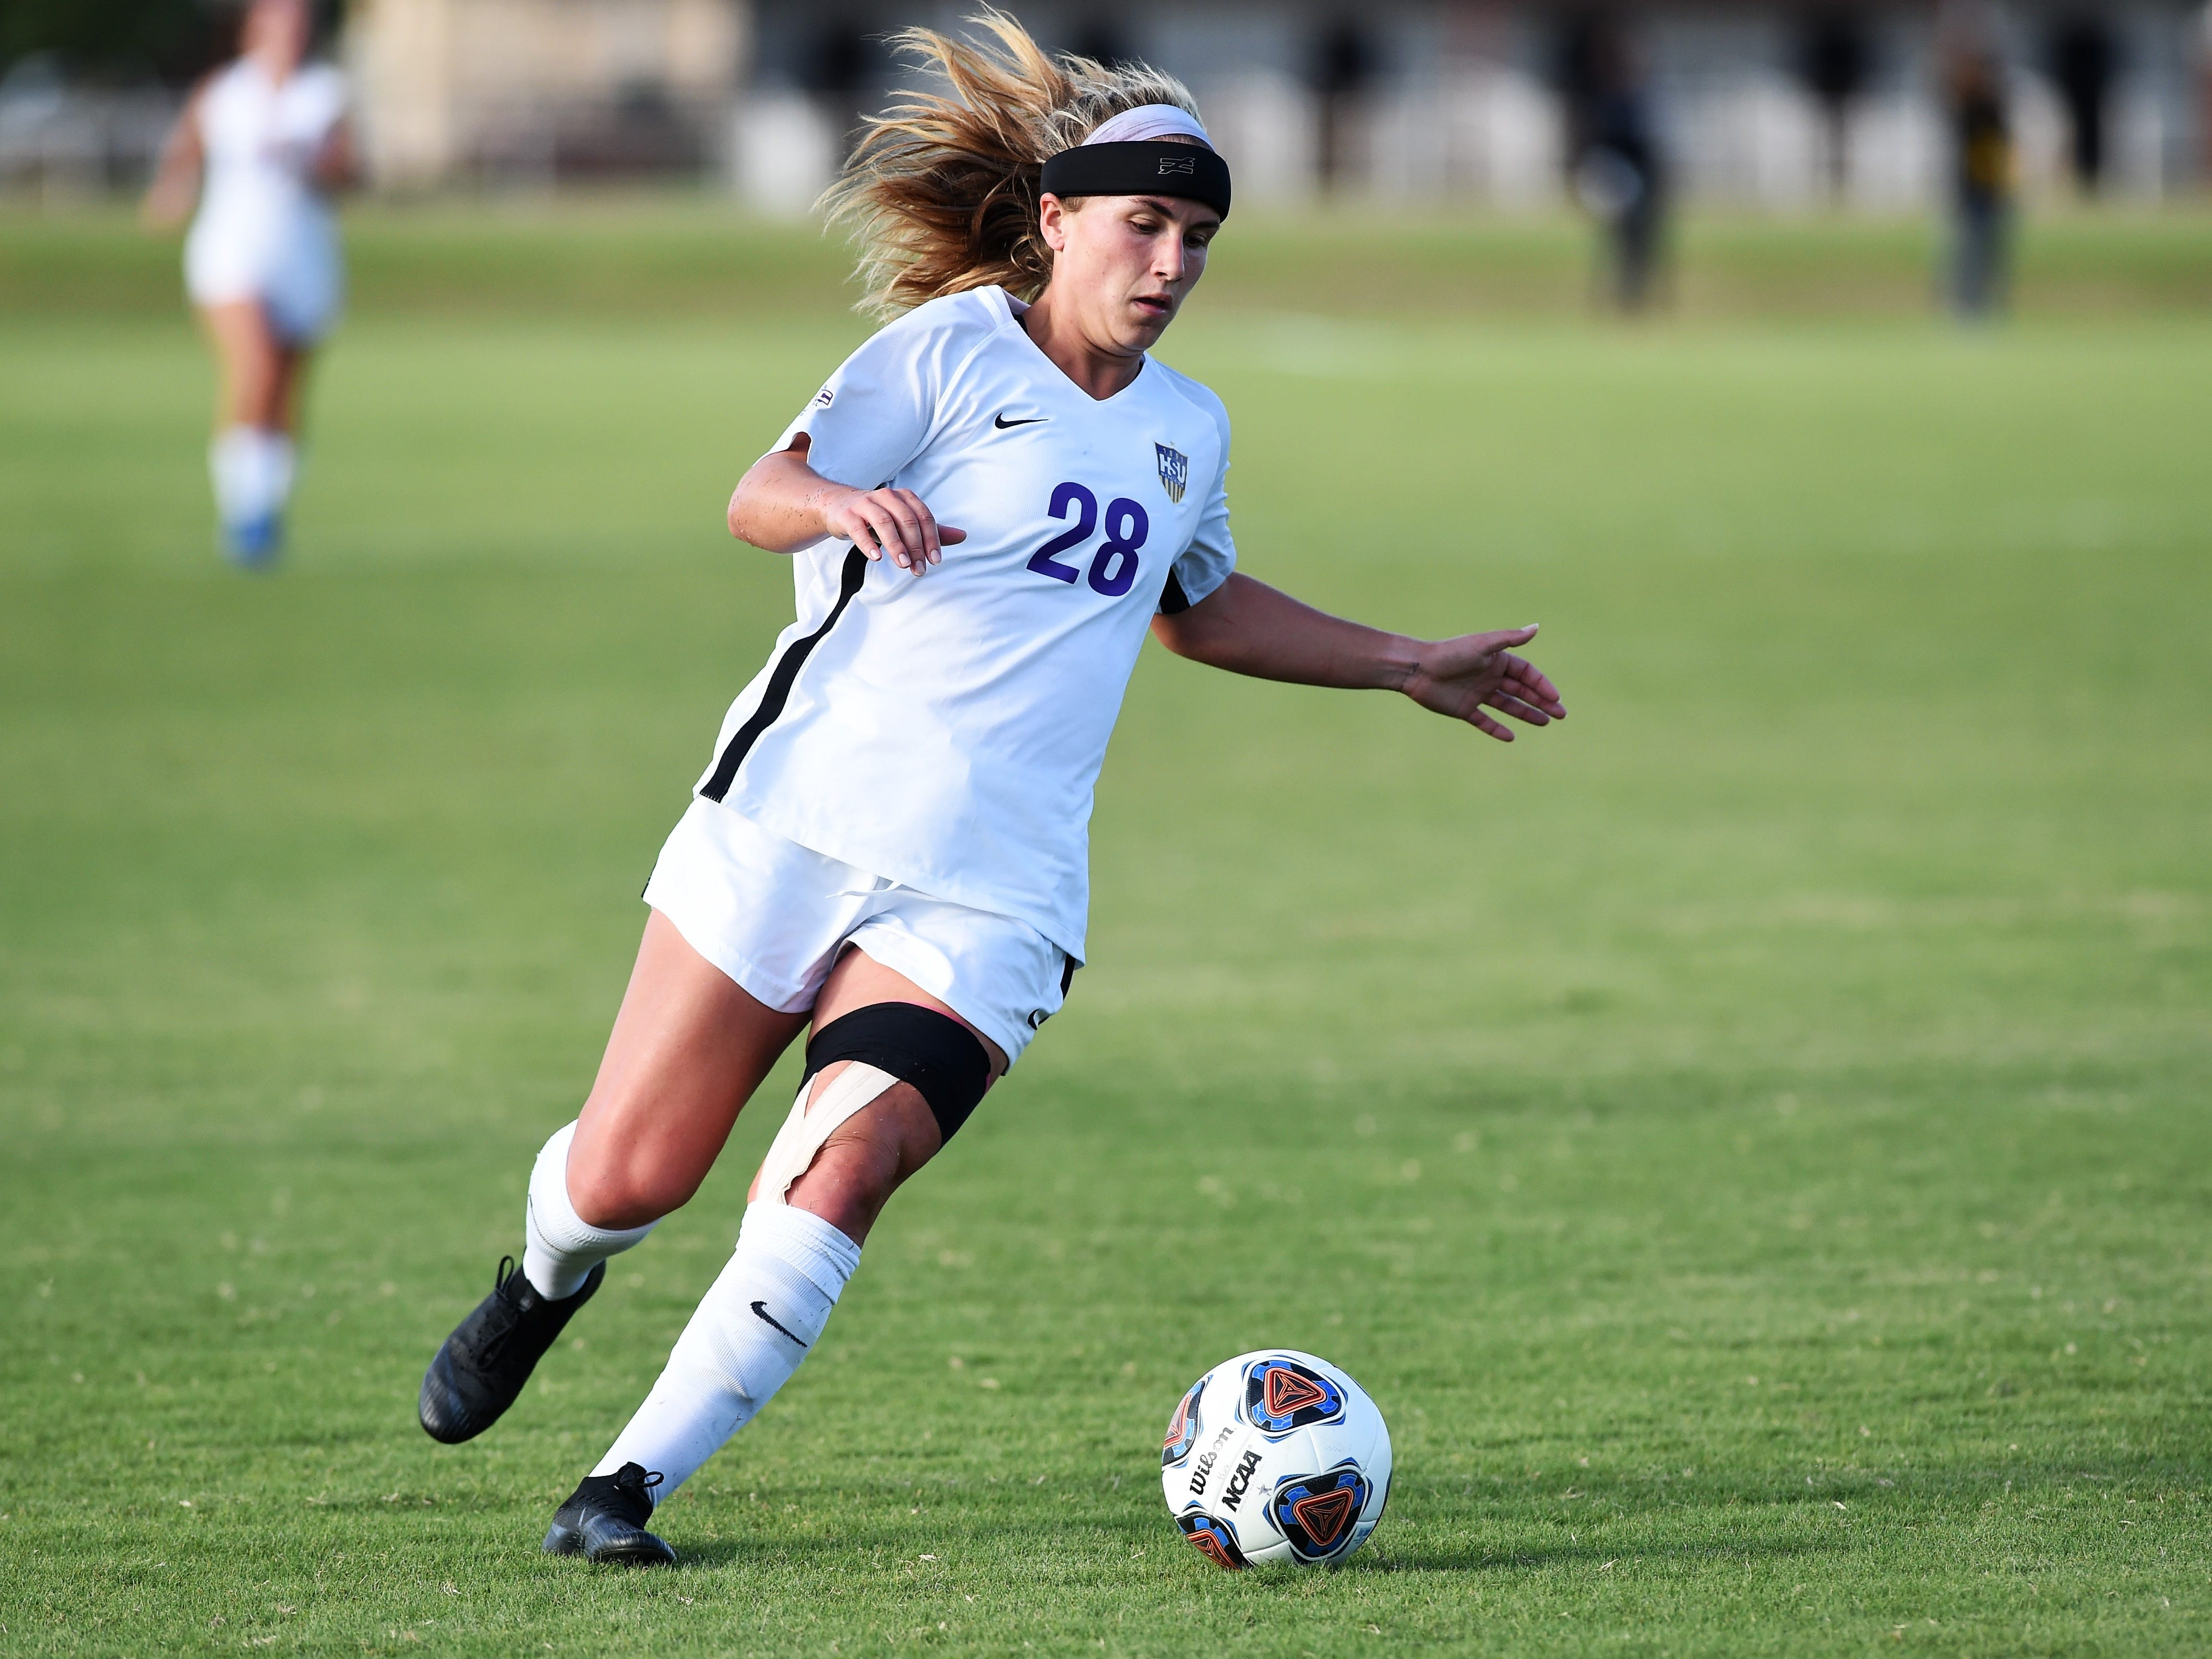 Hardin-Simmons midfielder Kenne Kessler (28) plays the ball against Howard Payne at the HSU Soccer Complex on Thursday, Oct. 11, 2018. The Cowgirls won 4-1.